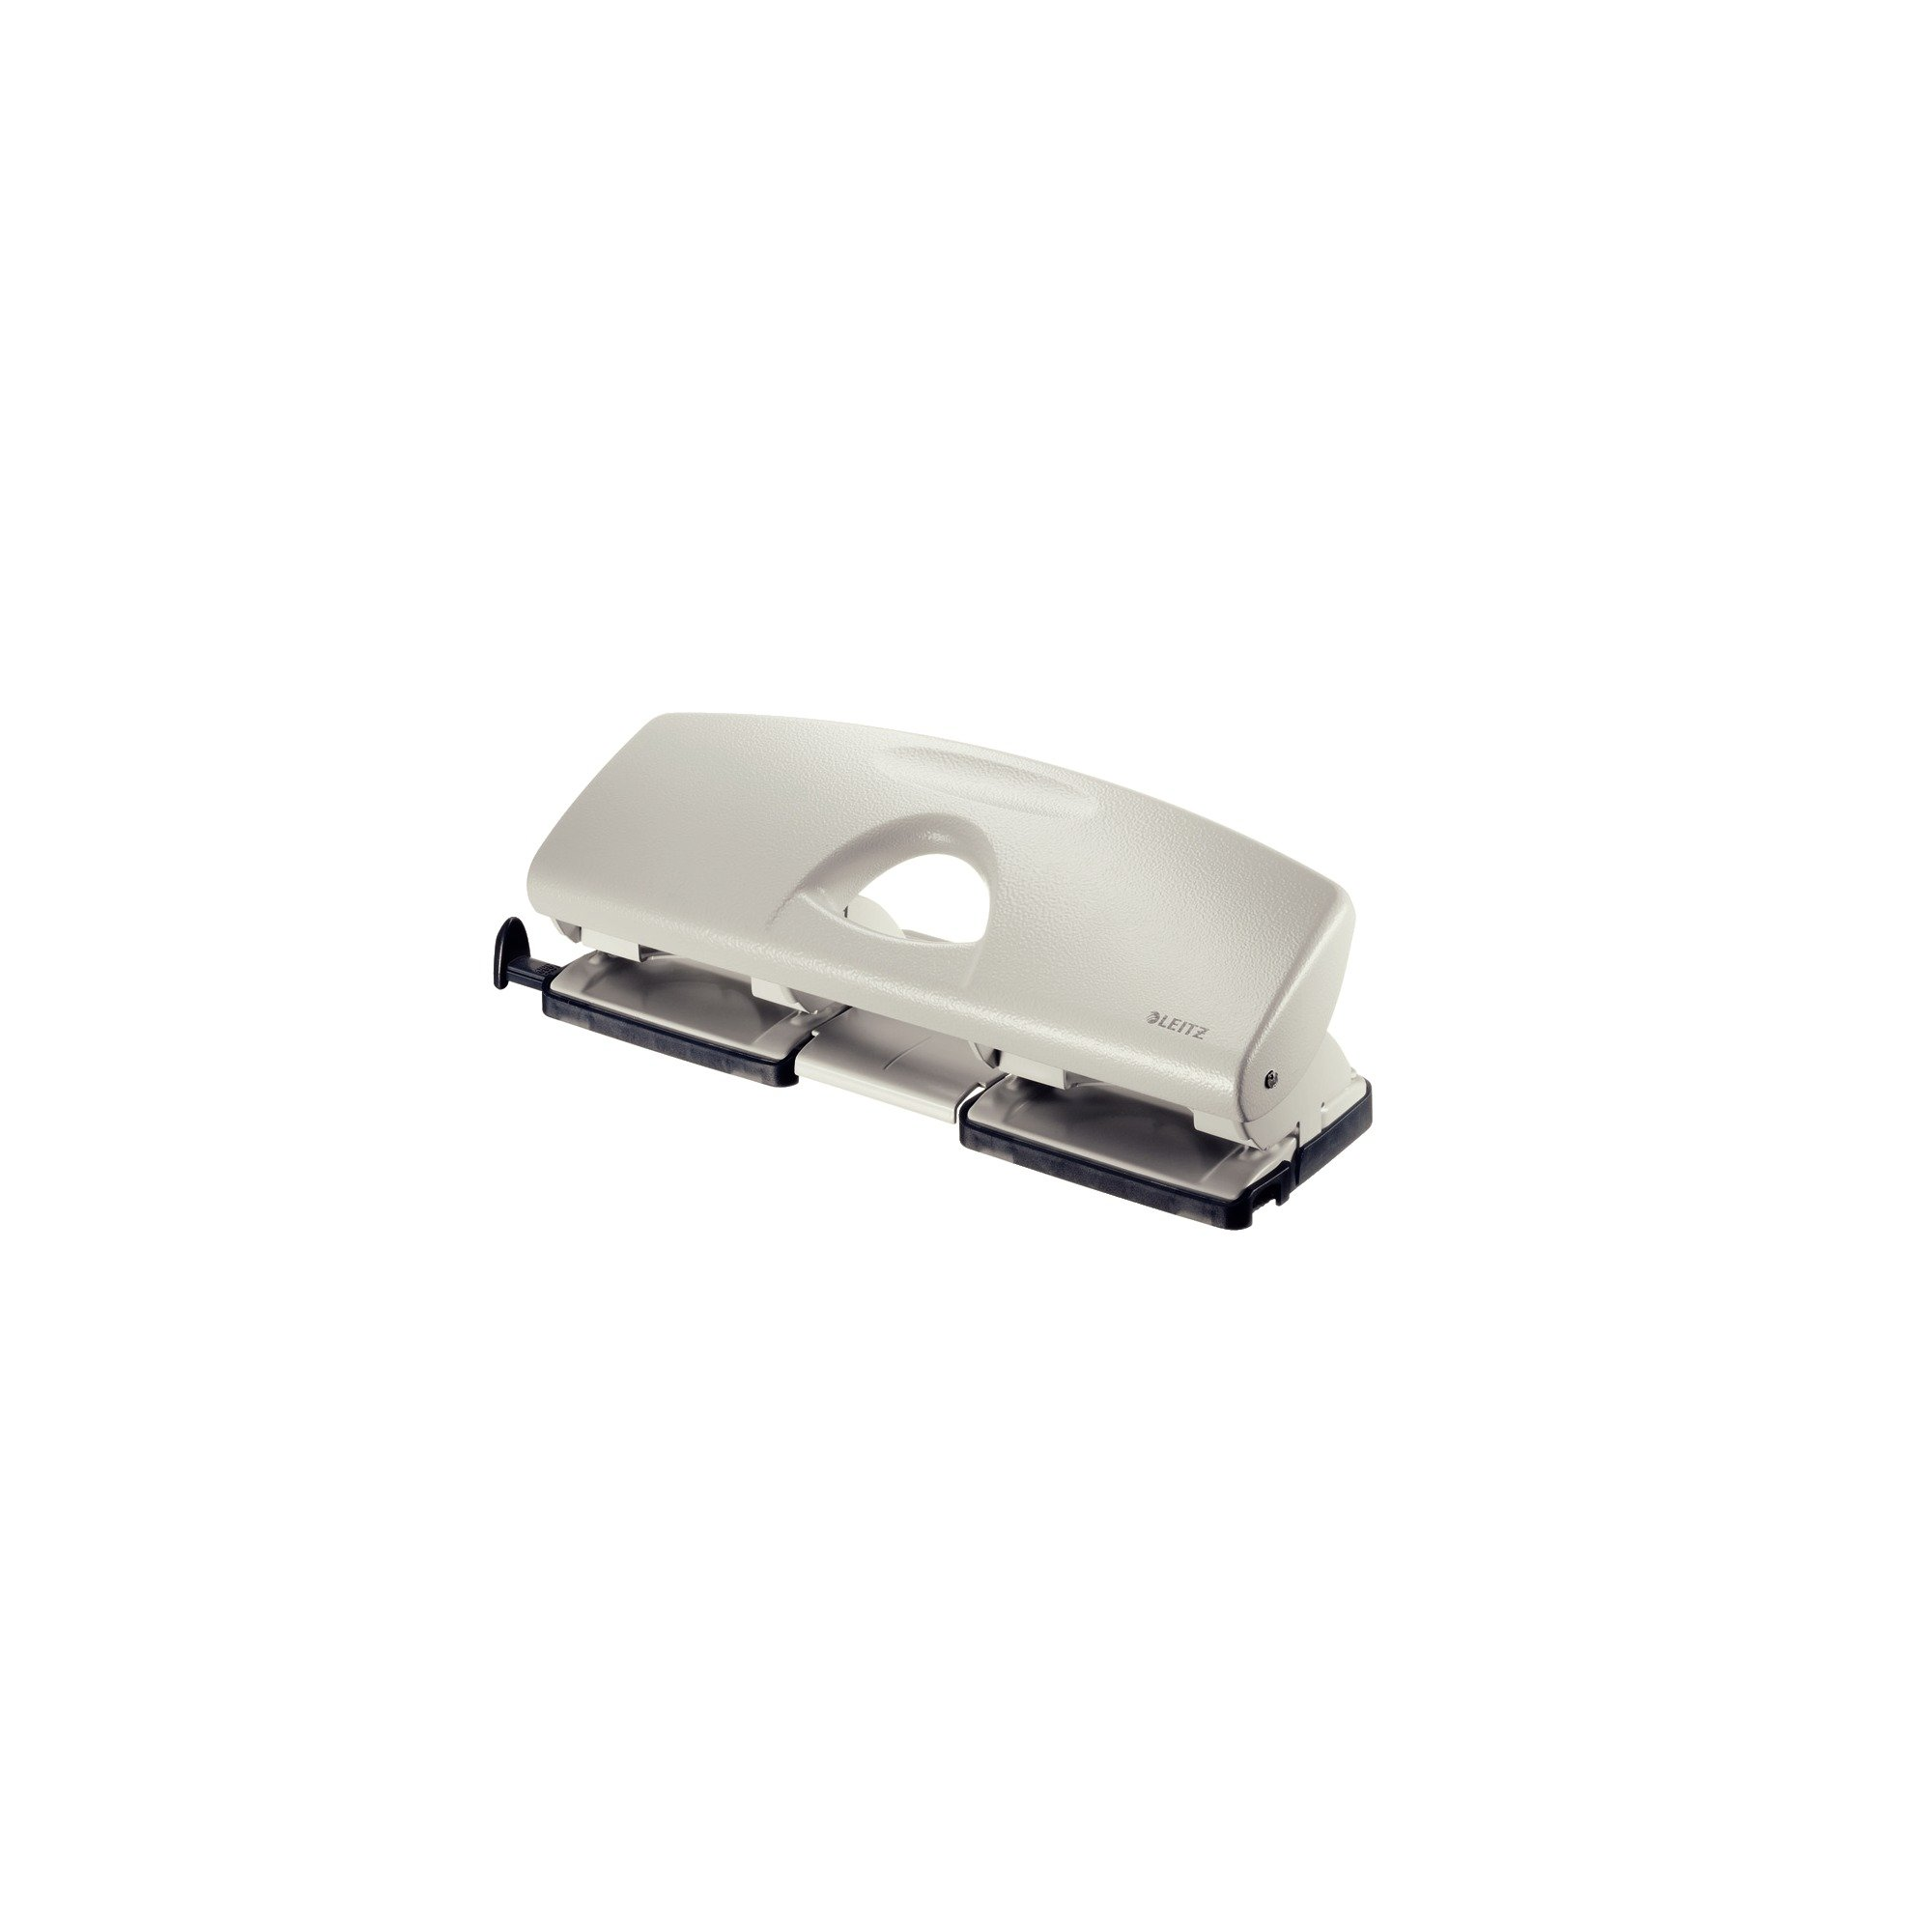 Leitz 4 Hole Punch - Grey by Leitz